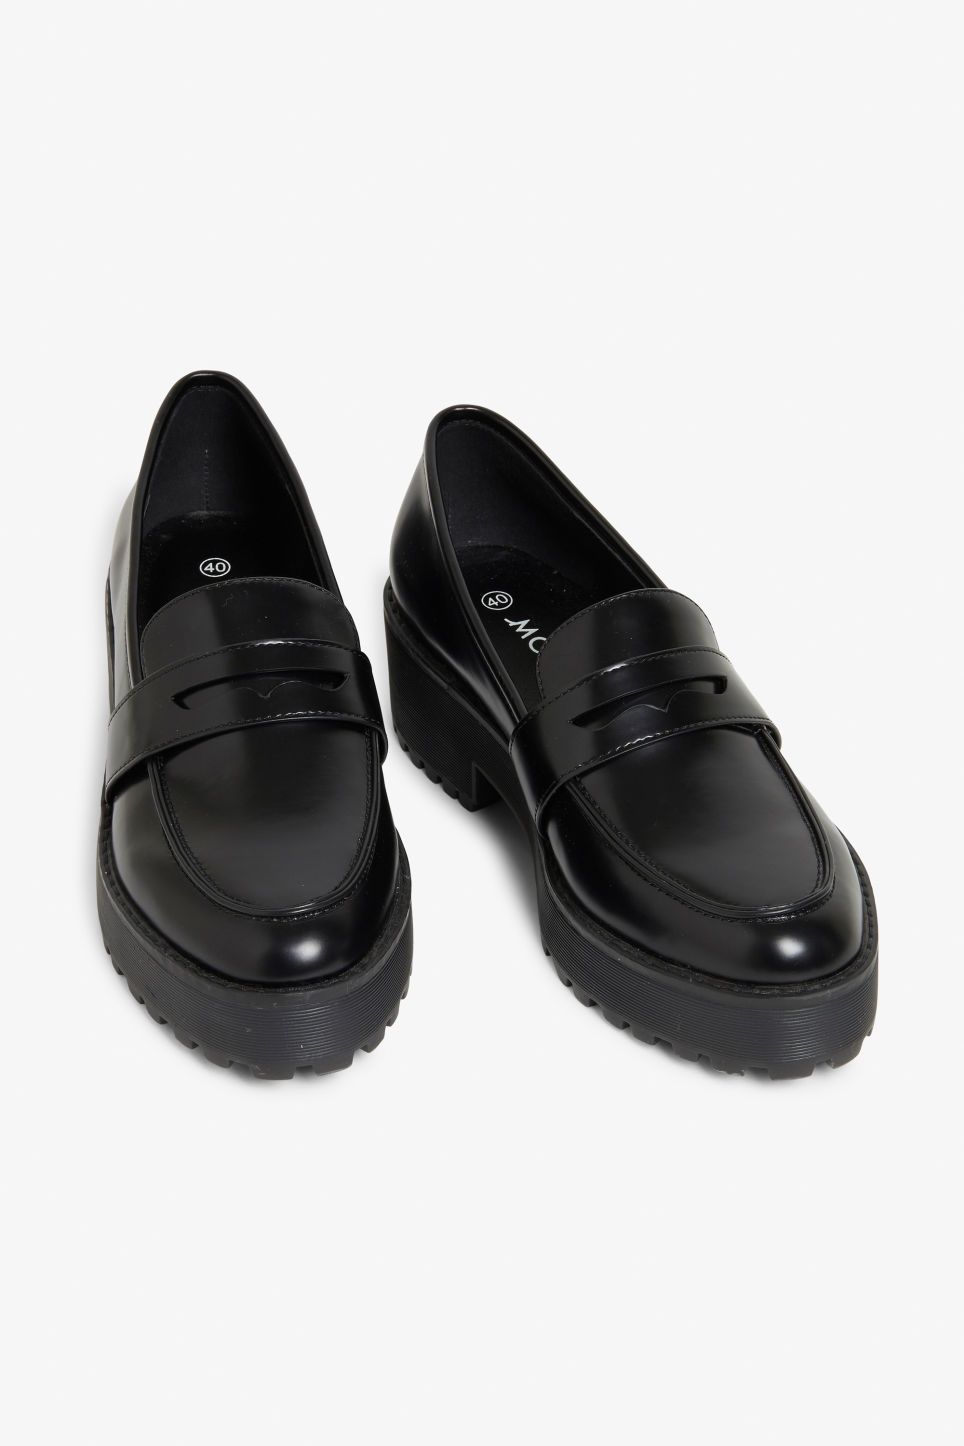 569554333f1 Let these classic black platform loafers bring you closer to heaven!  Literally. And yaas